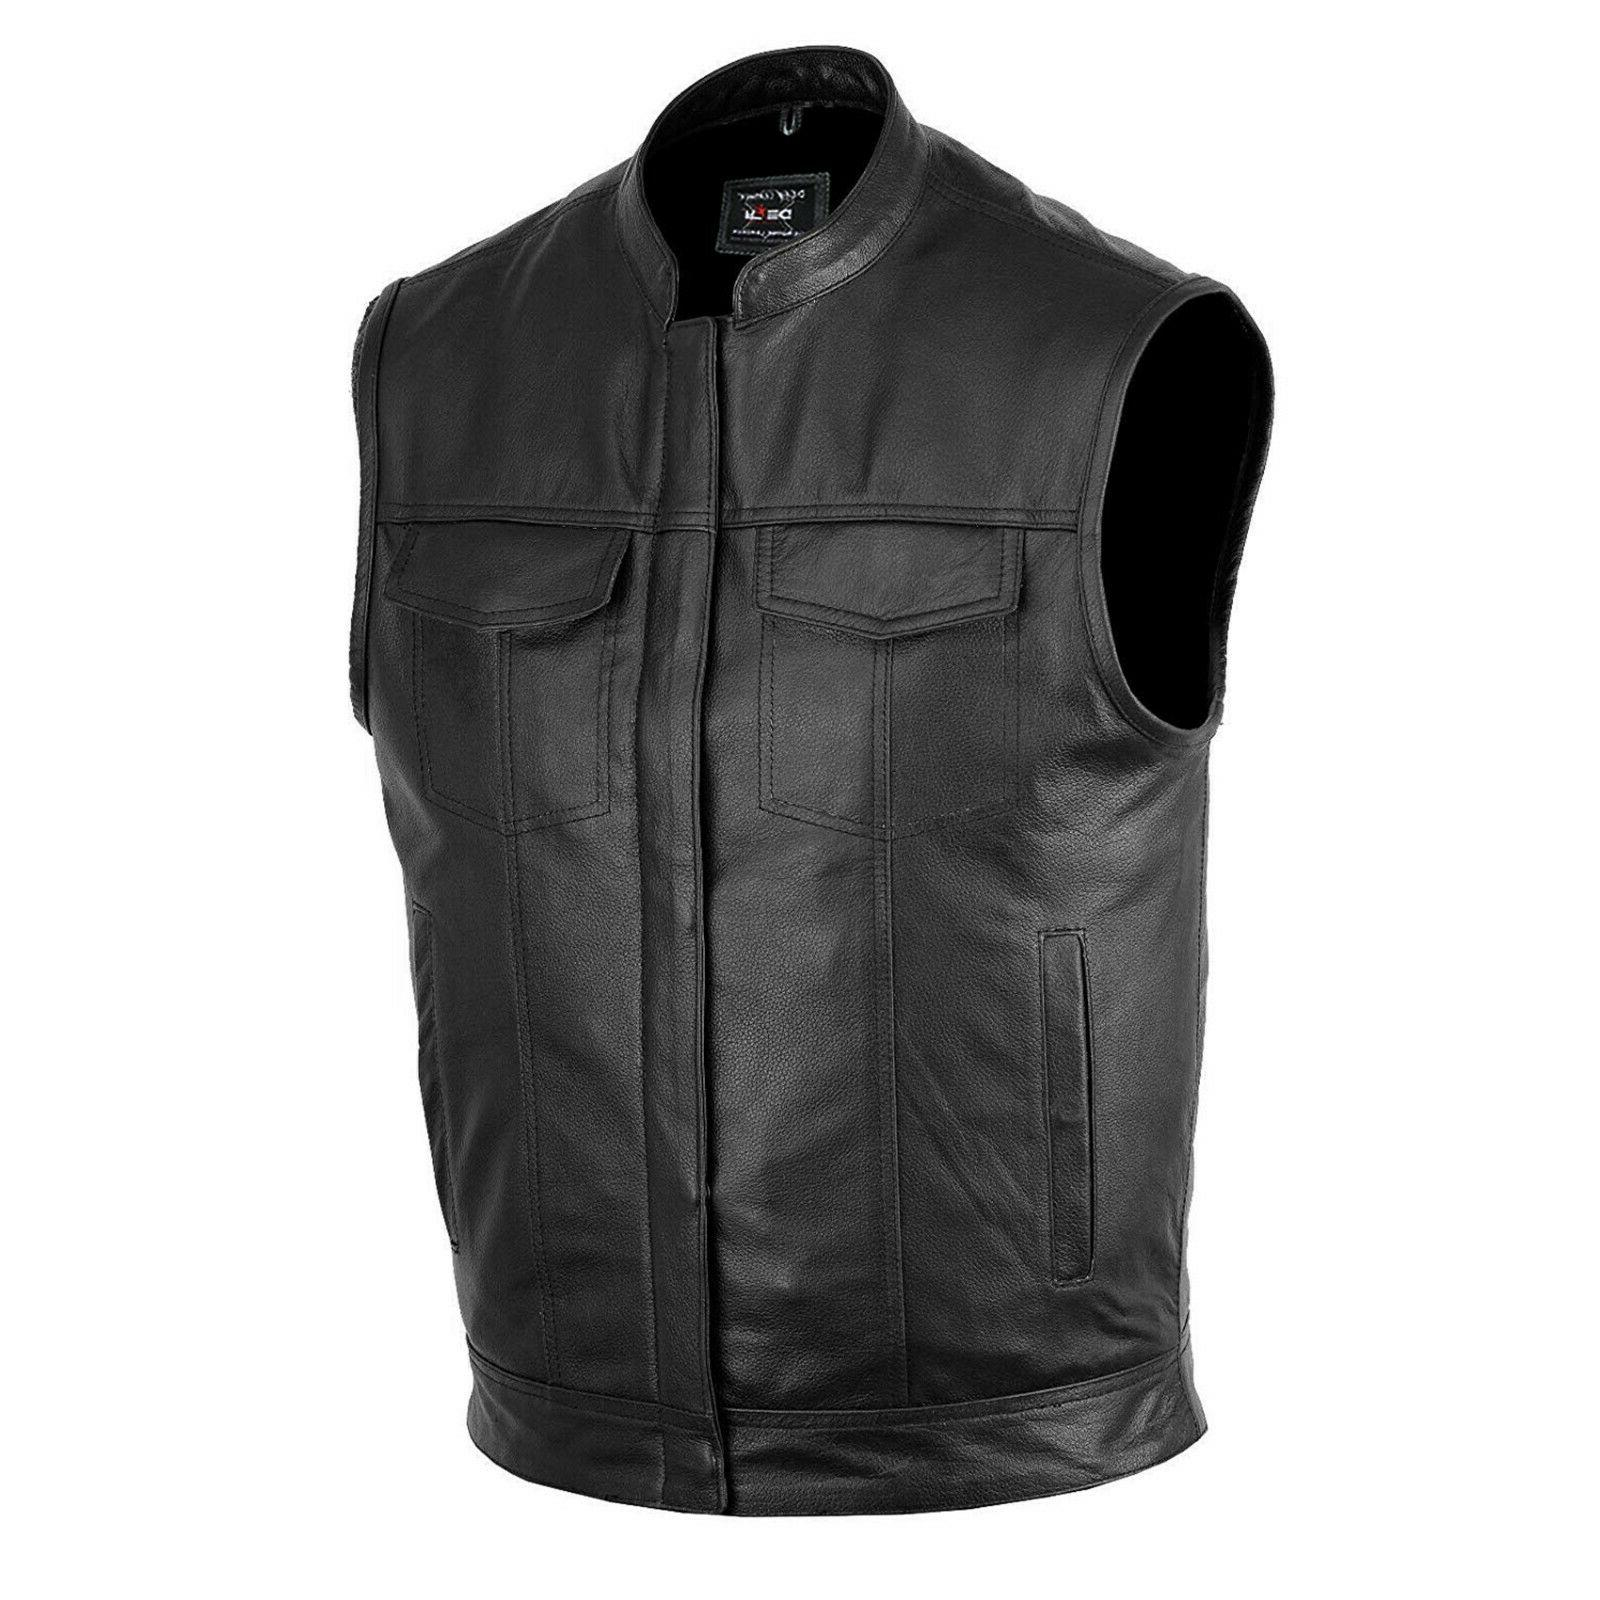 defy soa men s motorcycle club leather